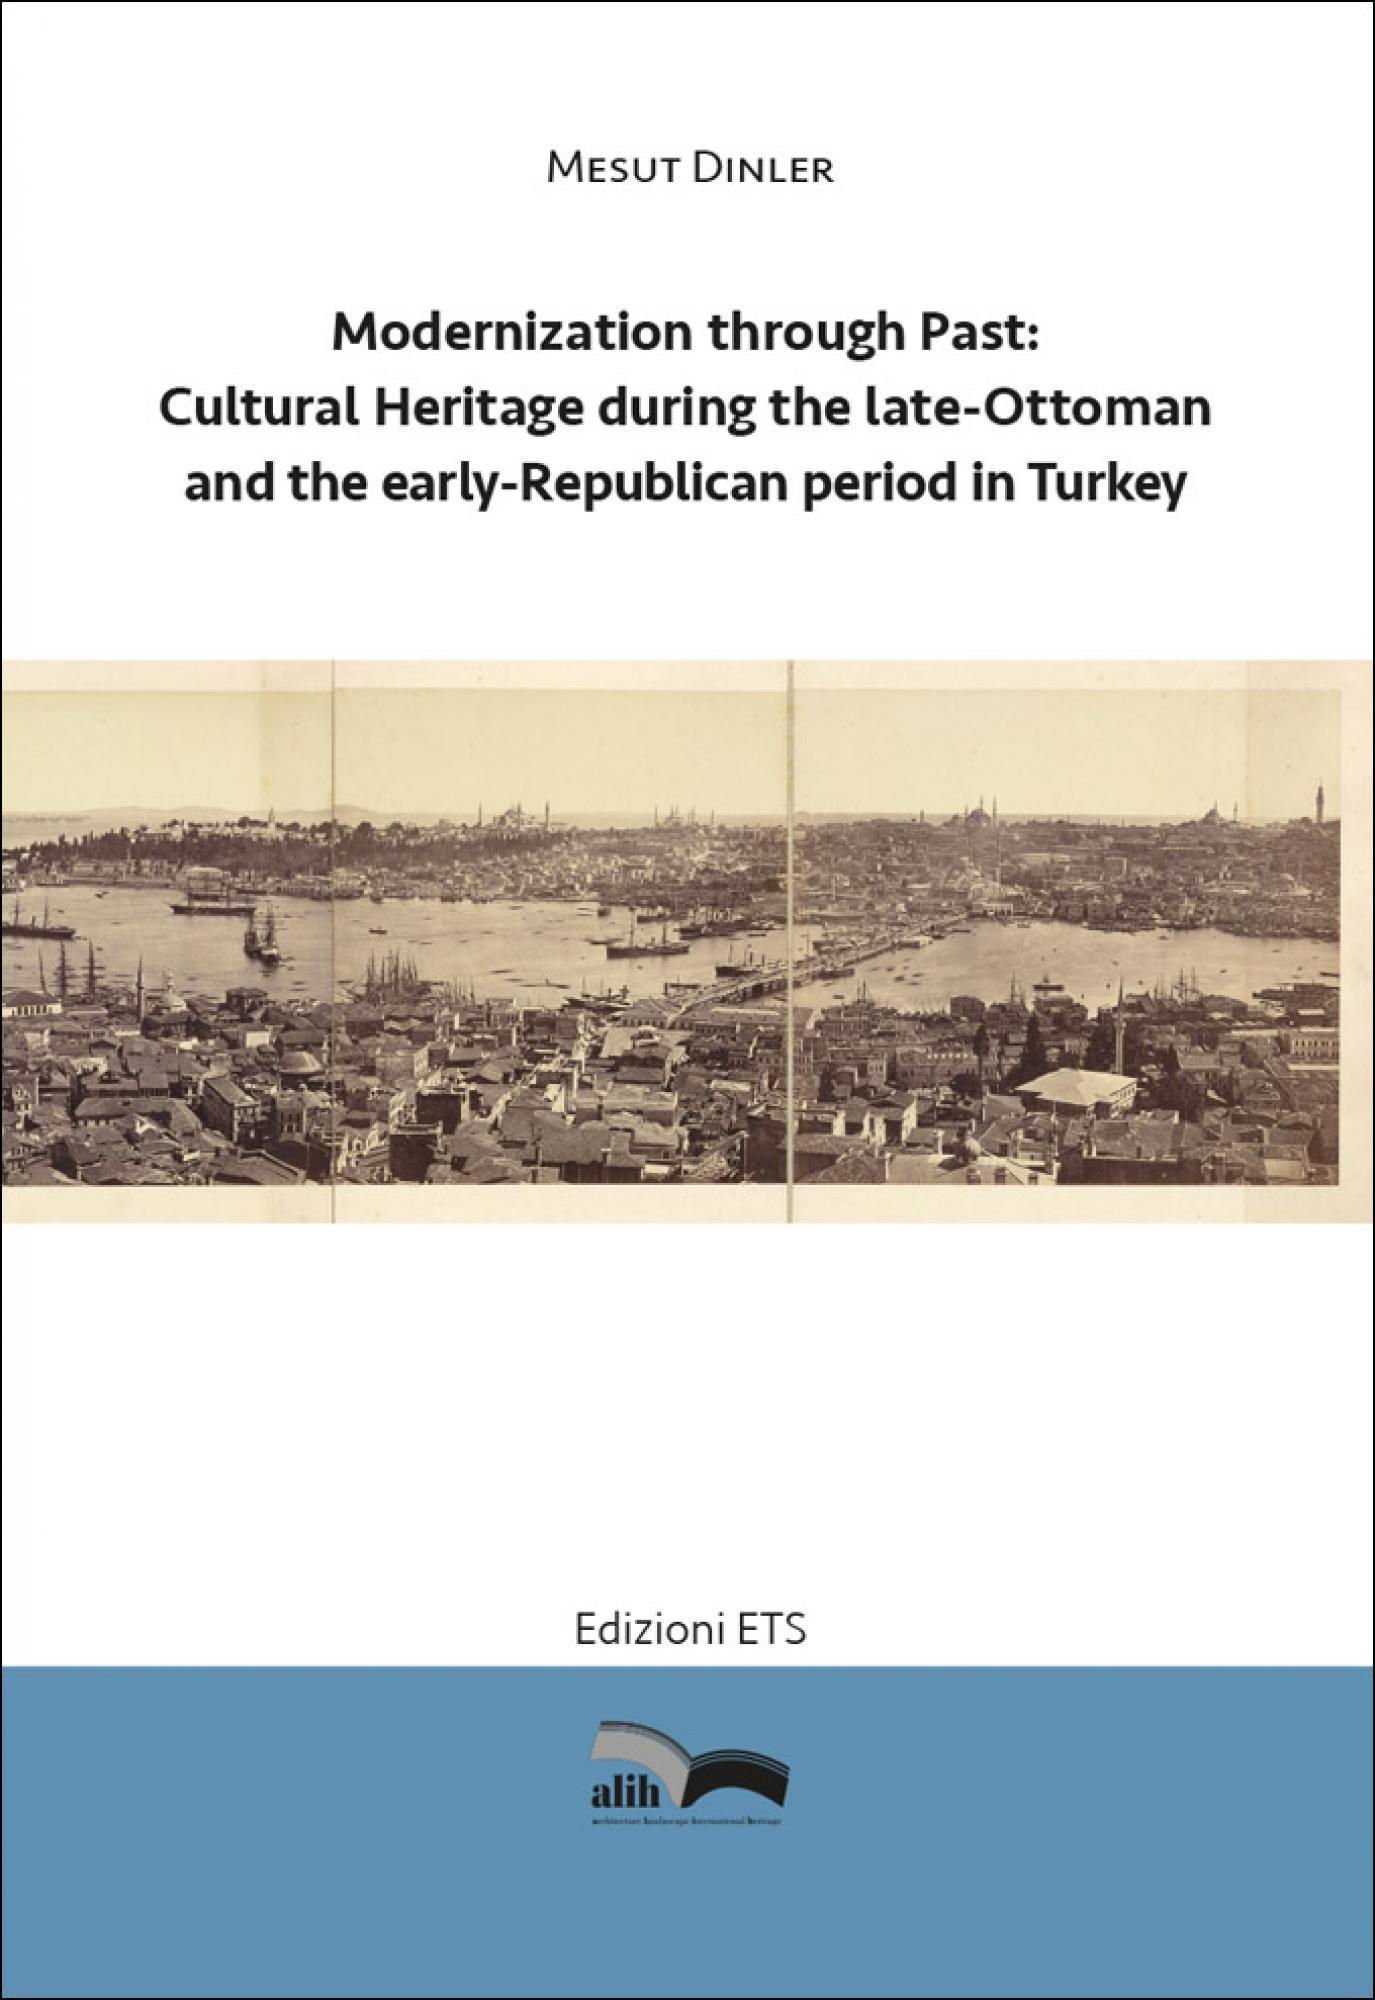 Modernization through Past.